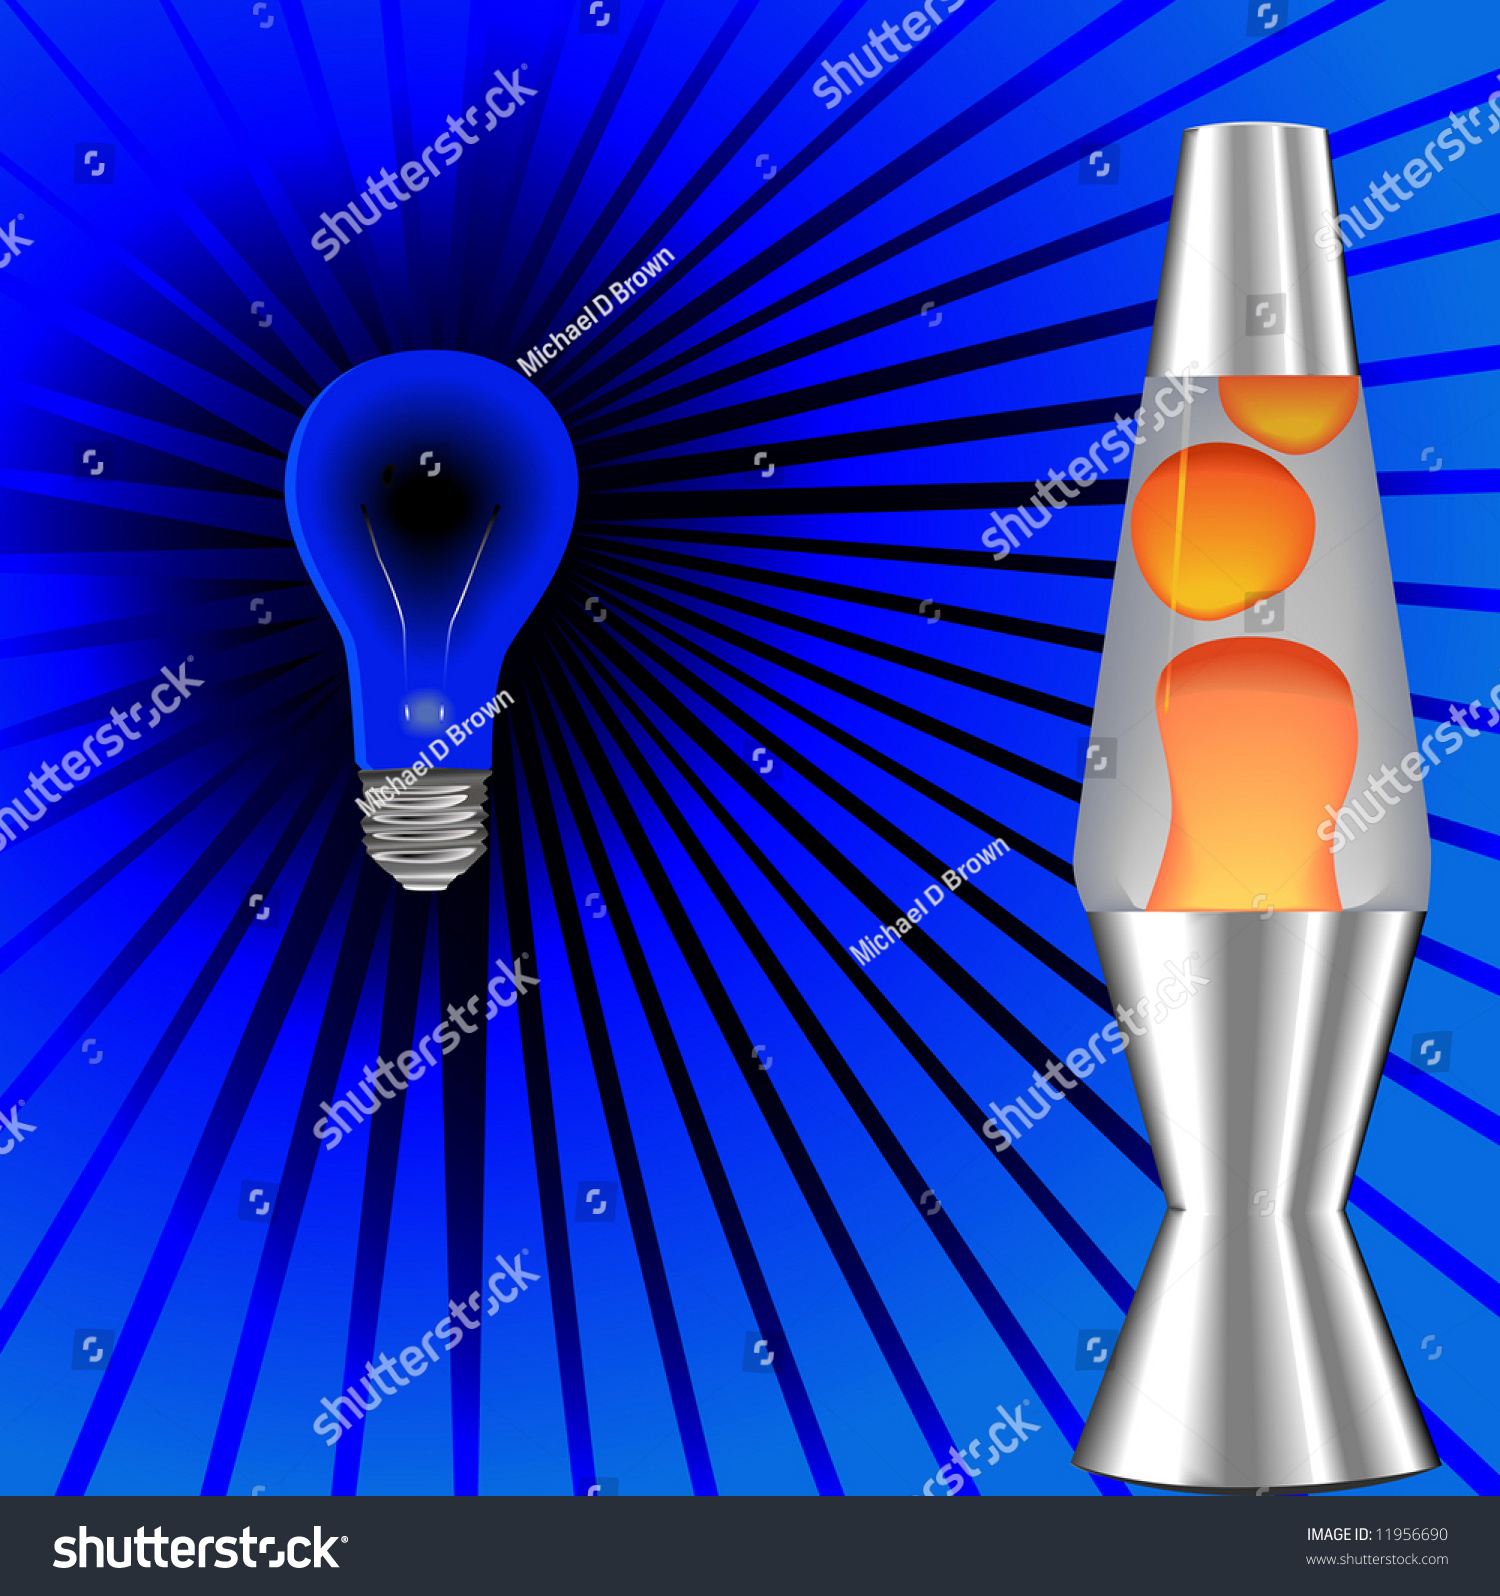 Lava lamp vector - A Psychedelic Blacklight Background With Red Orange Lava Lamp 60 S 70 S On Blue Rays Stock Vector Illustration 11956690 Shutterstock